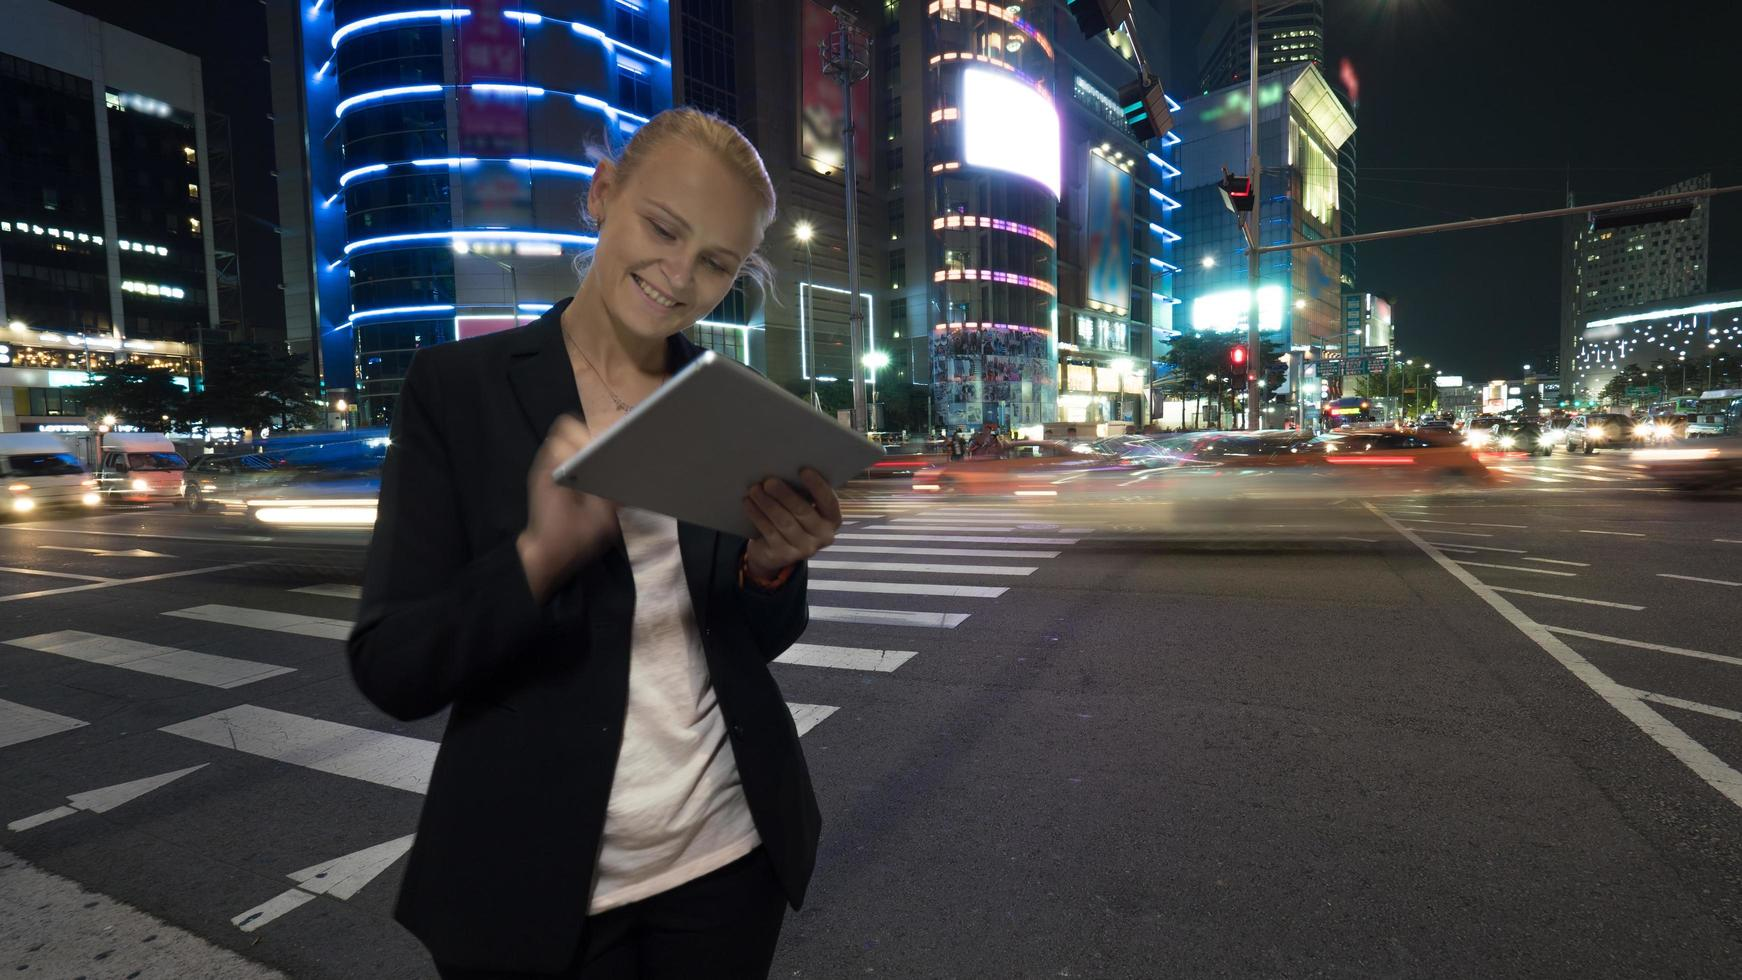 Woman using a tablet in a city photo